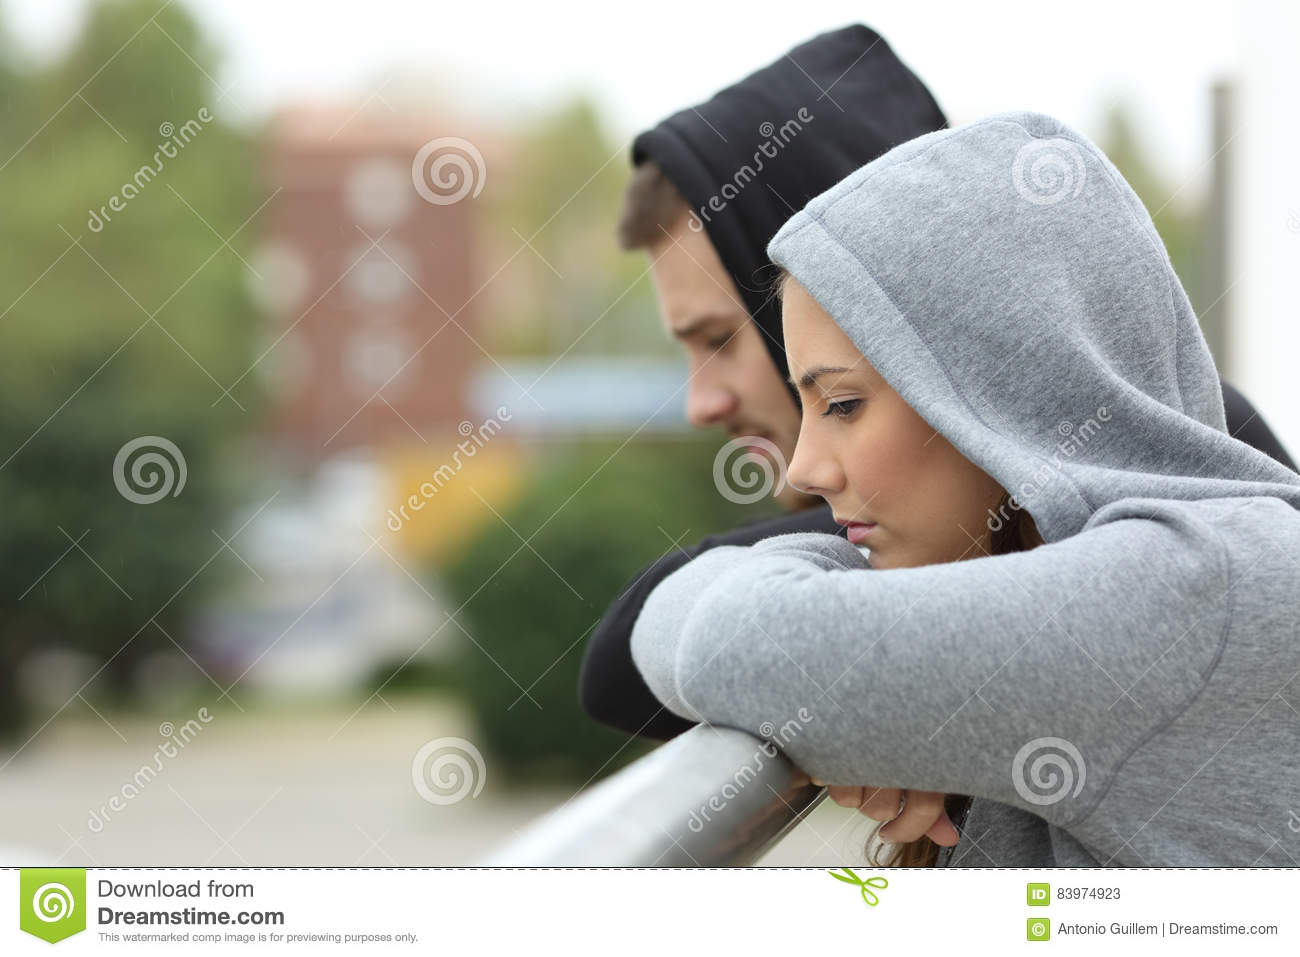 Sad couple of teens looking down in a balcony